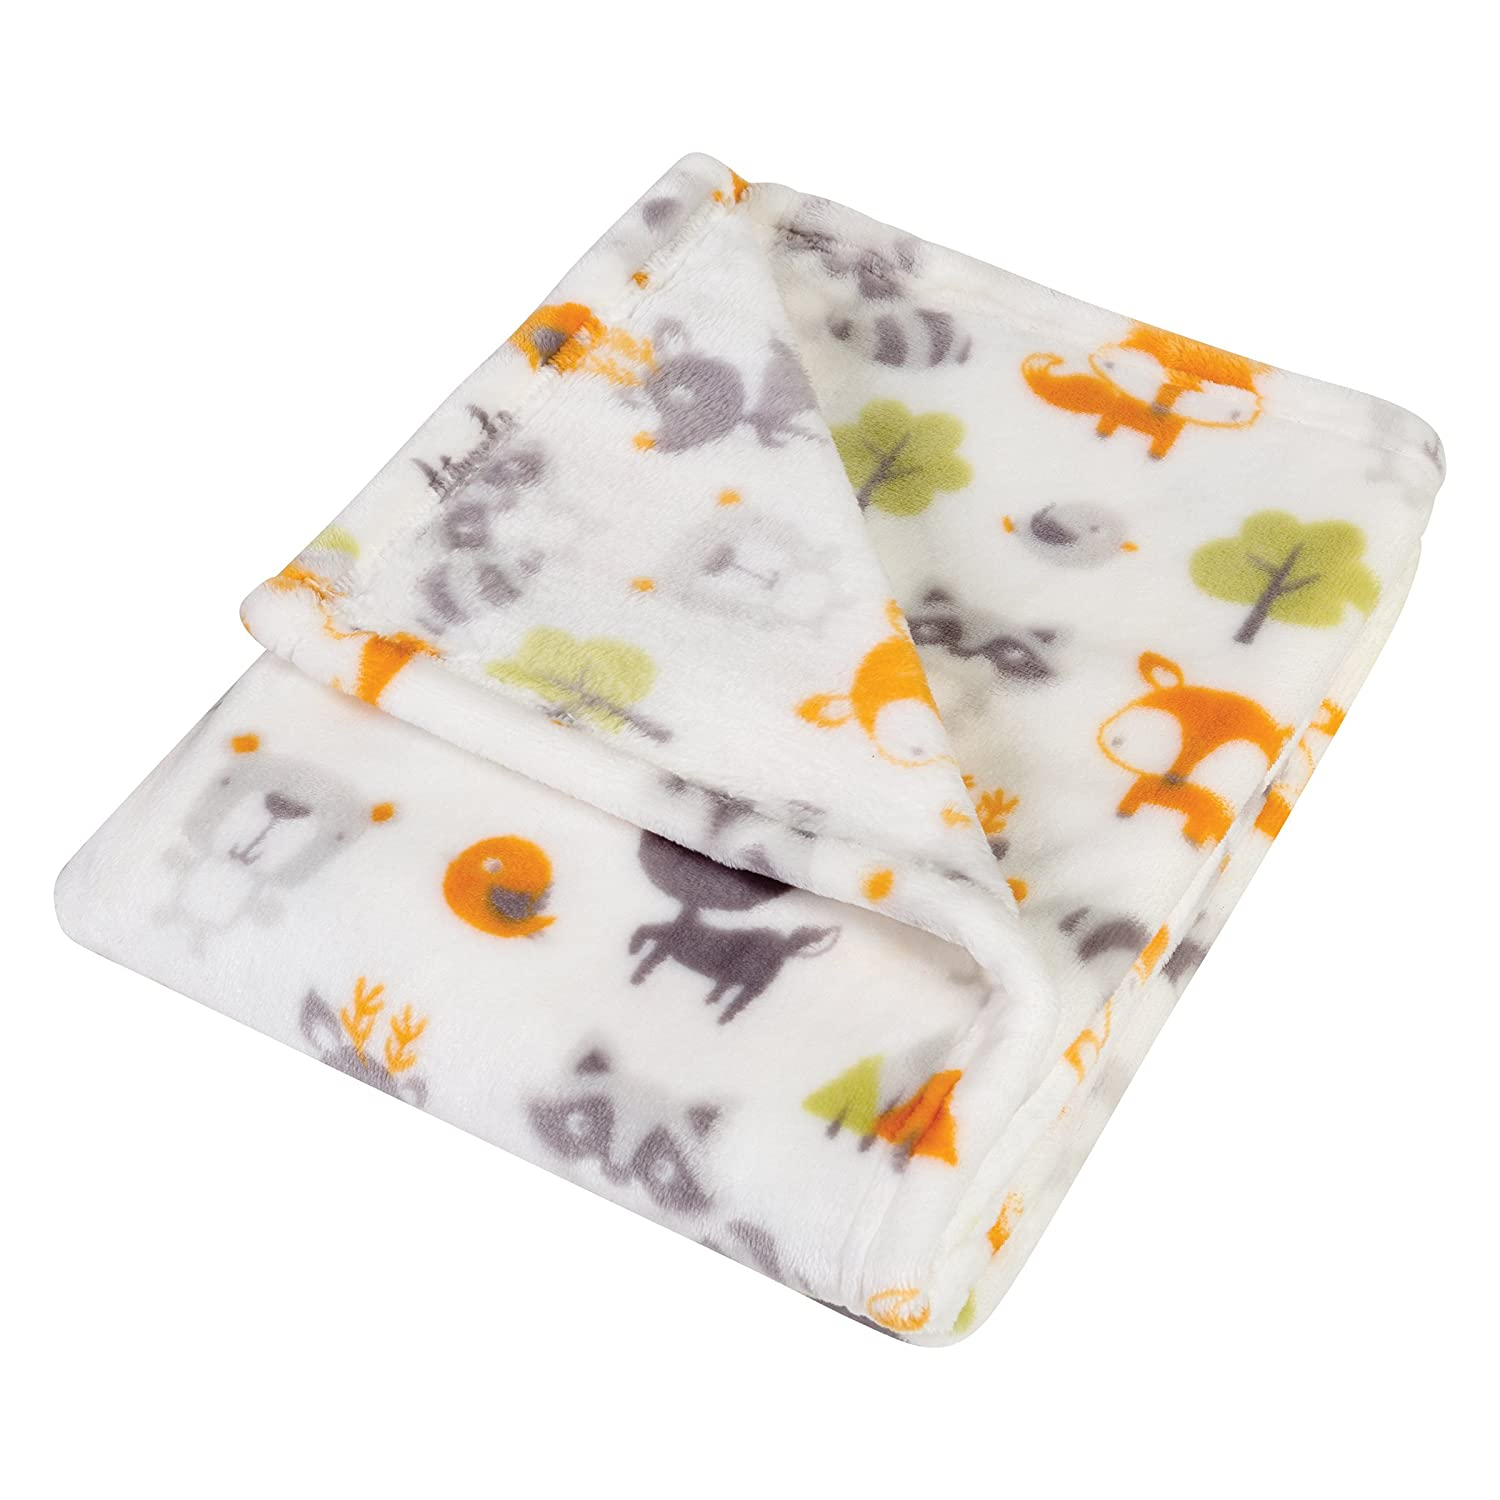 Trend Lab Plush Baby Blanket, Gray Art Deco Lions Scallop 102877